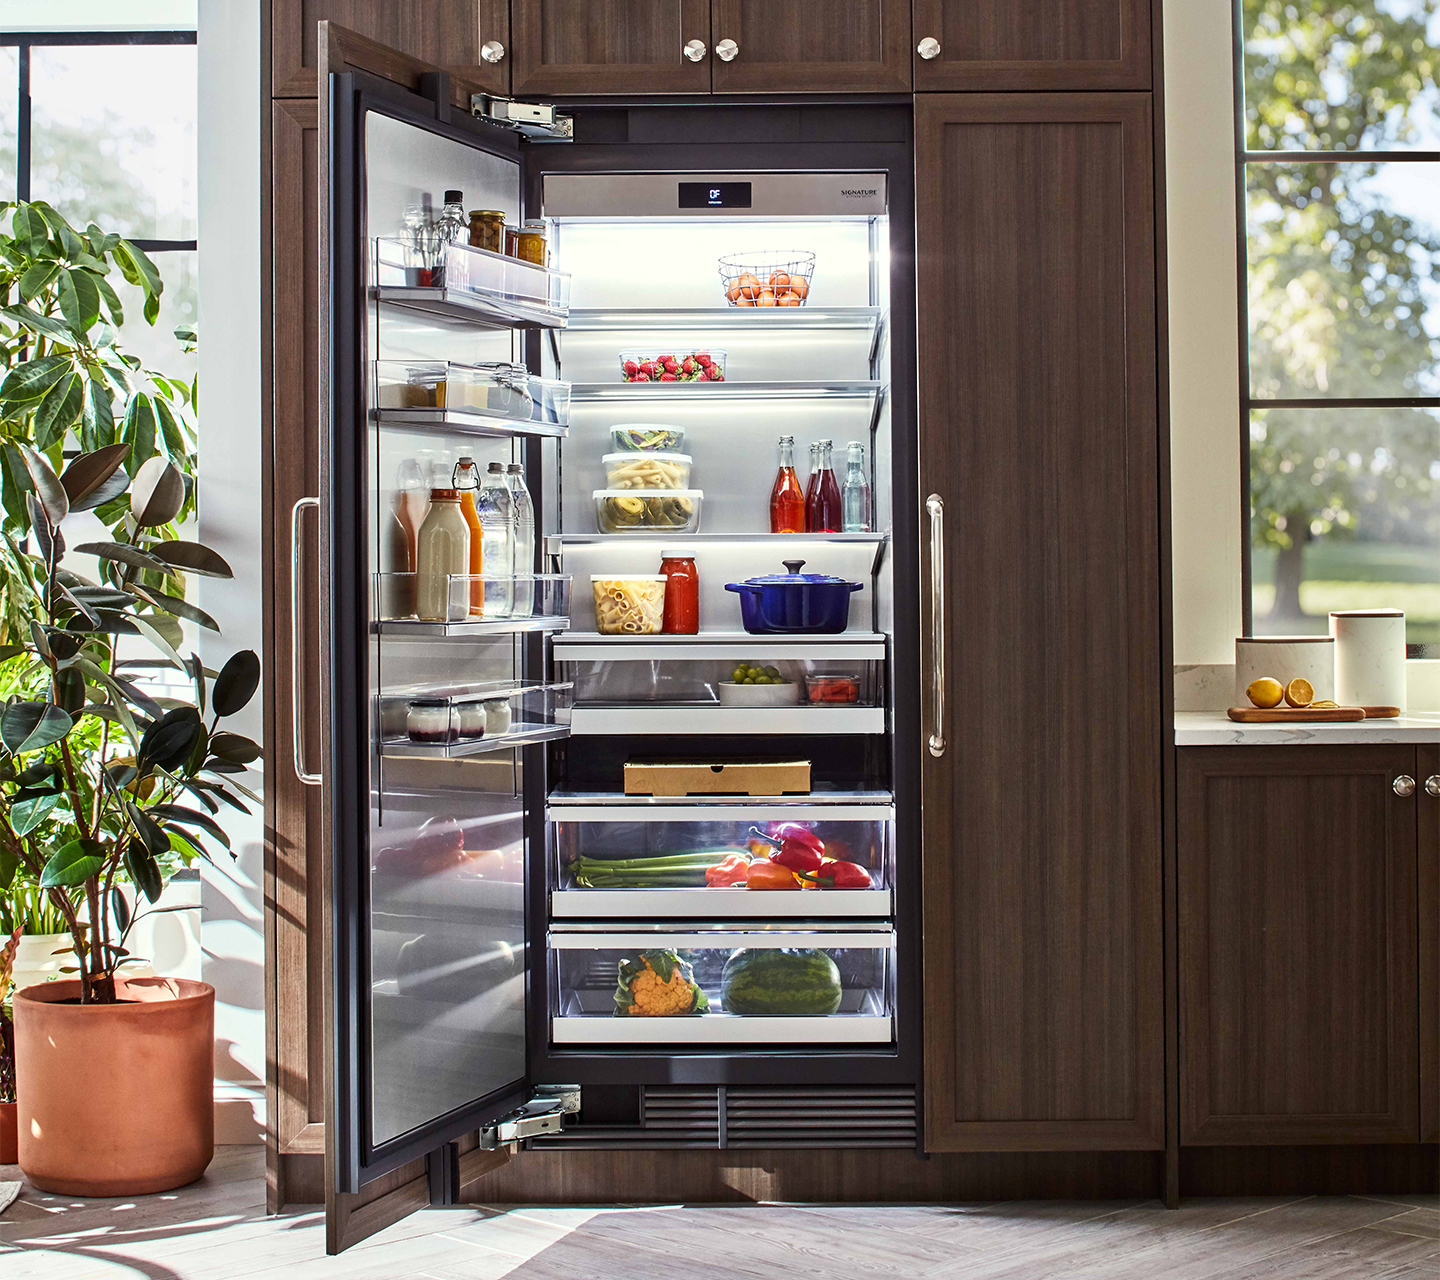 Signature Kitchen Suite | 24-inch Panel Ready Integrated Column Refrigerator